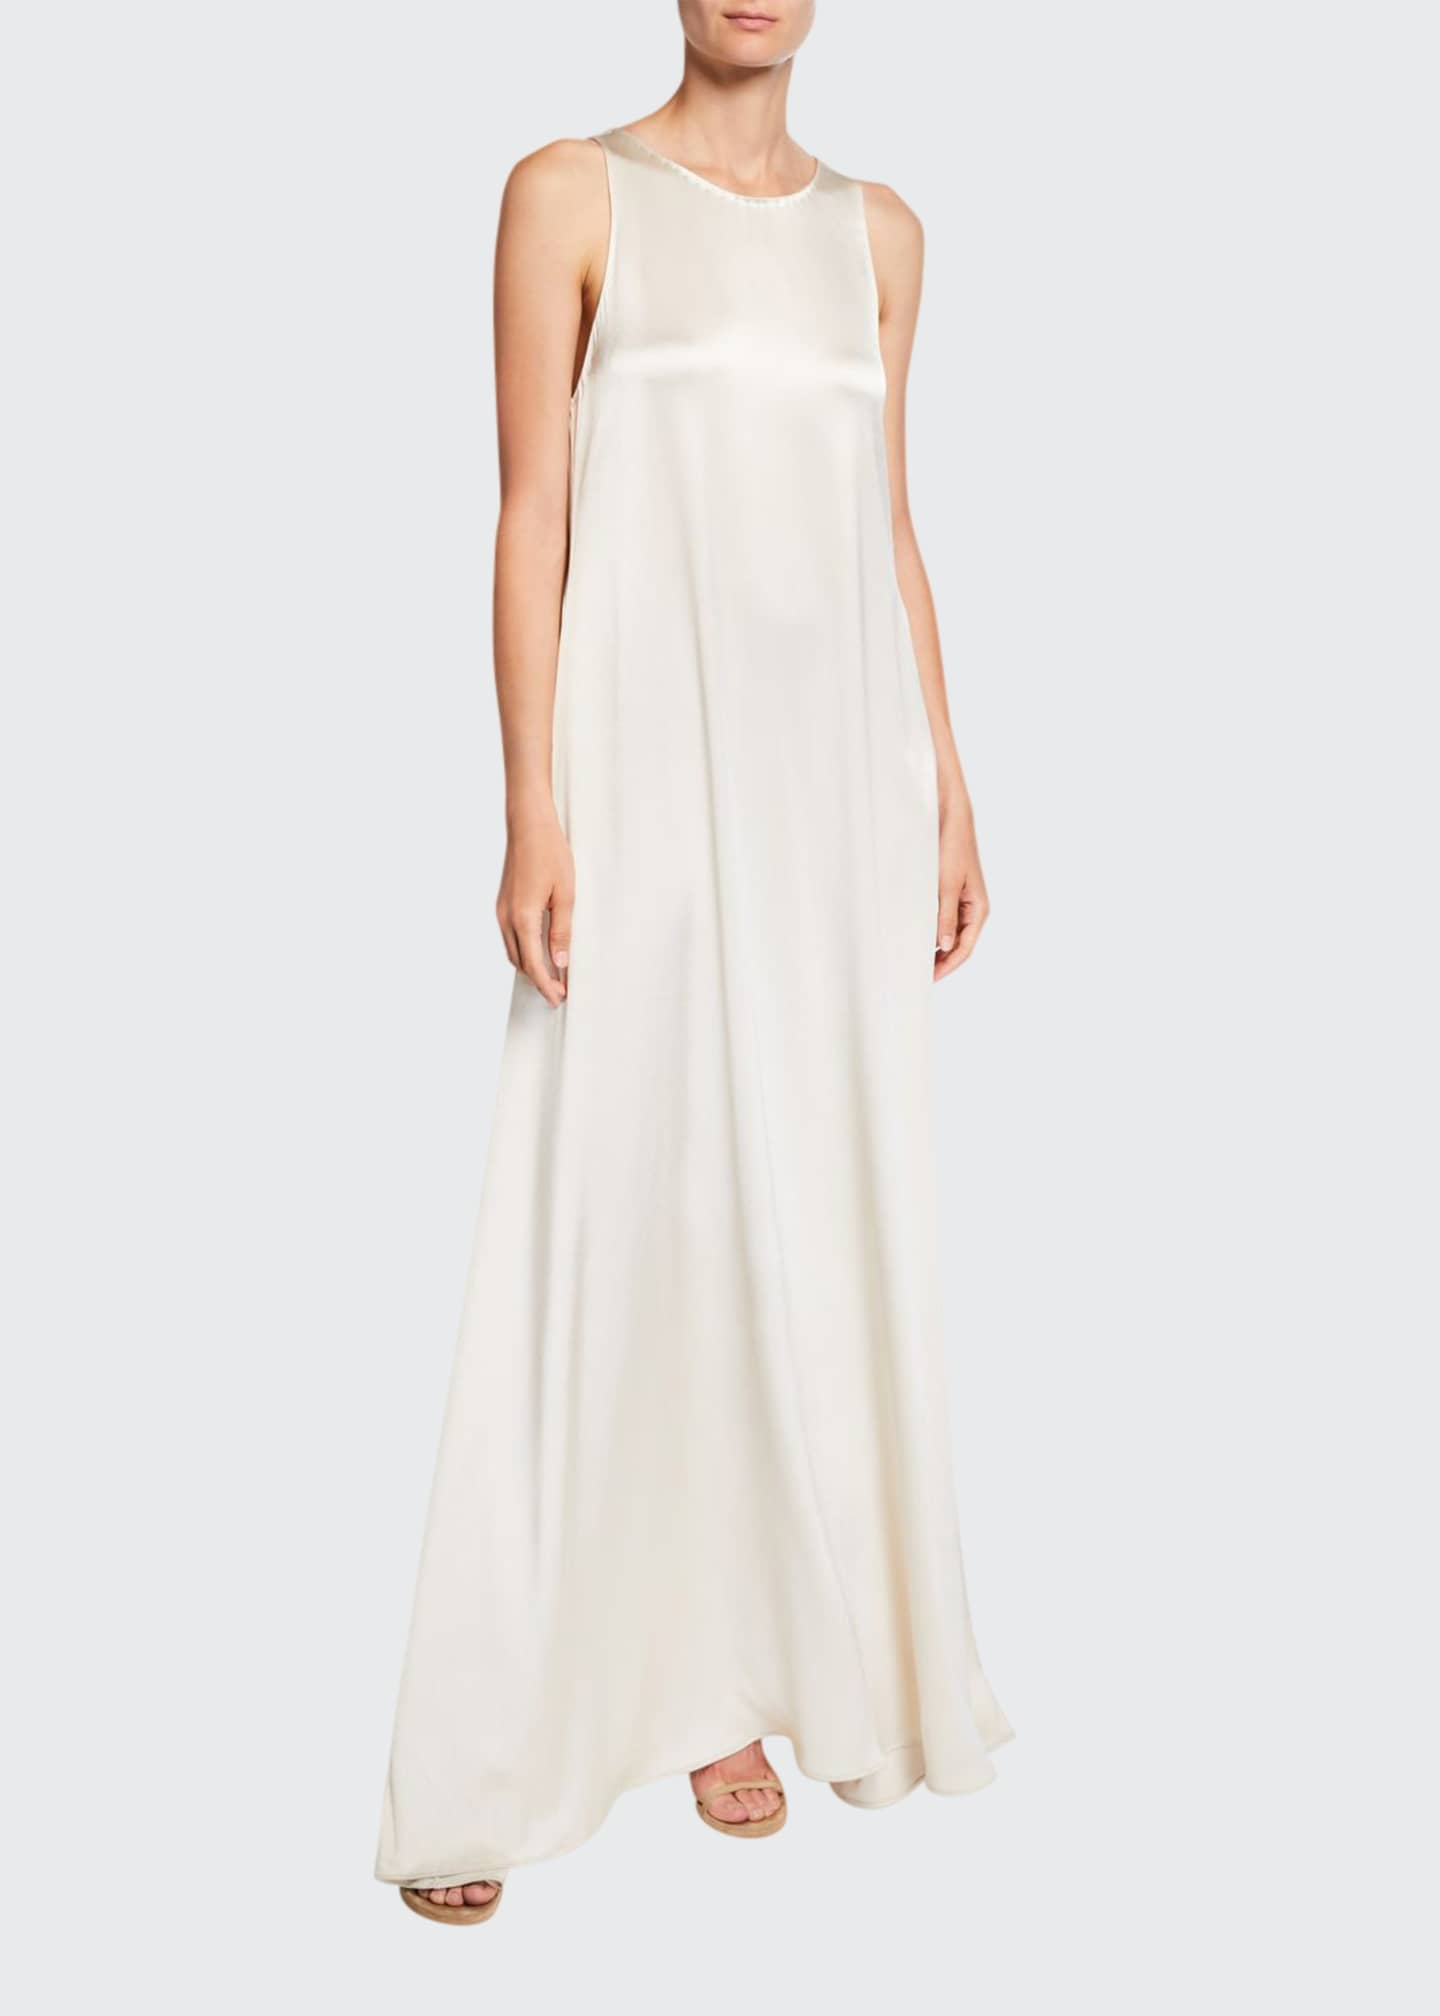 Deveaux New York Jewel-Neck Sleeveless Long Satin Gown